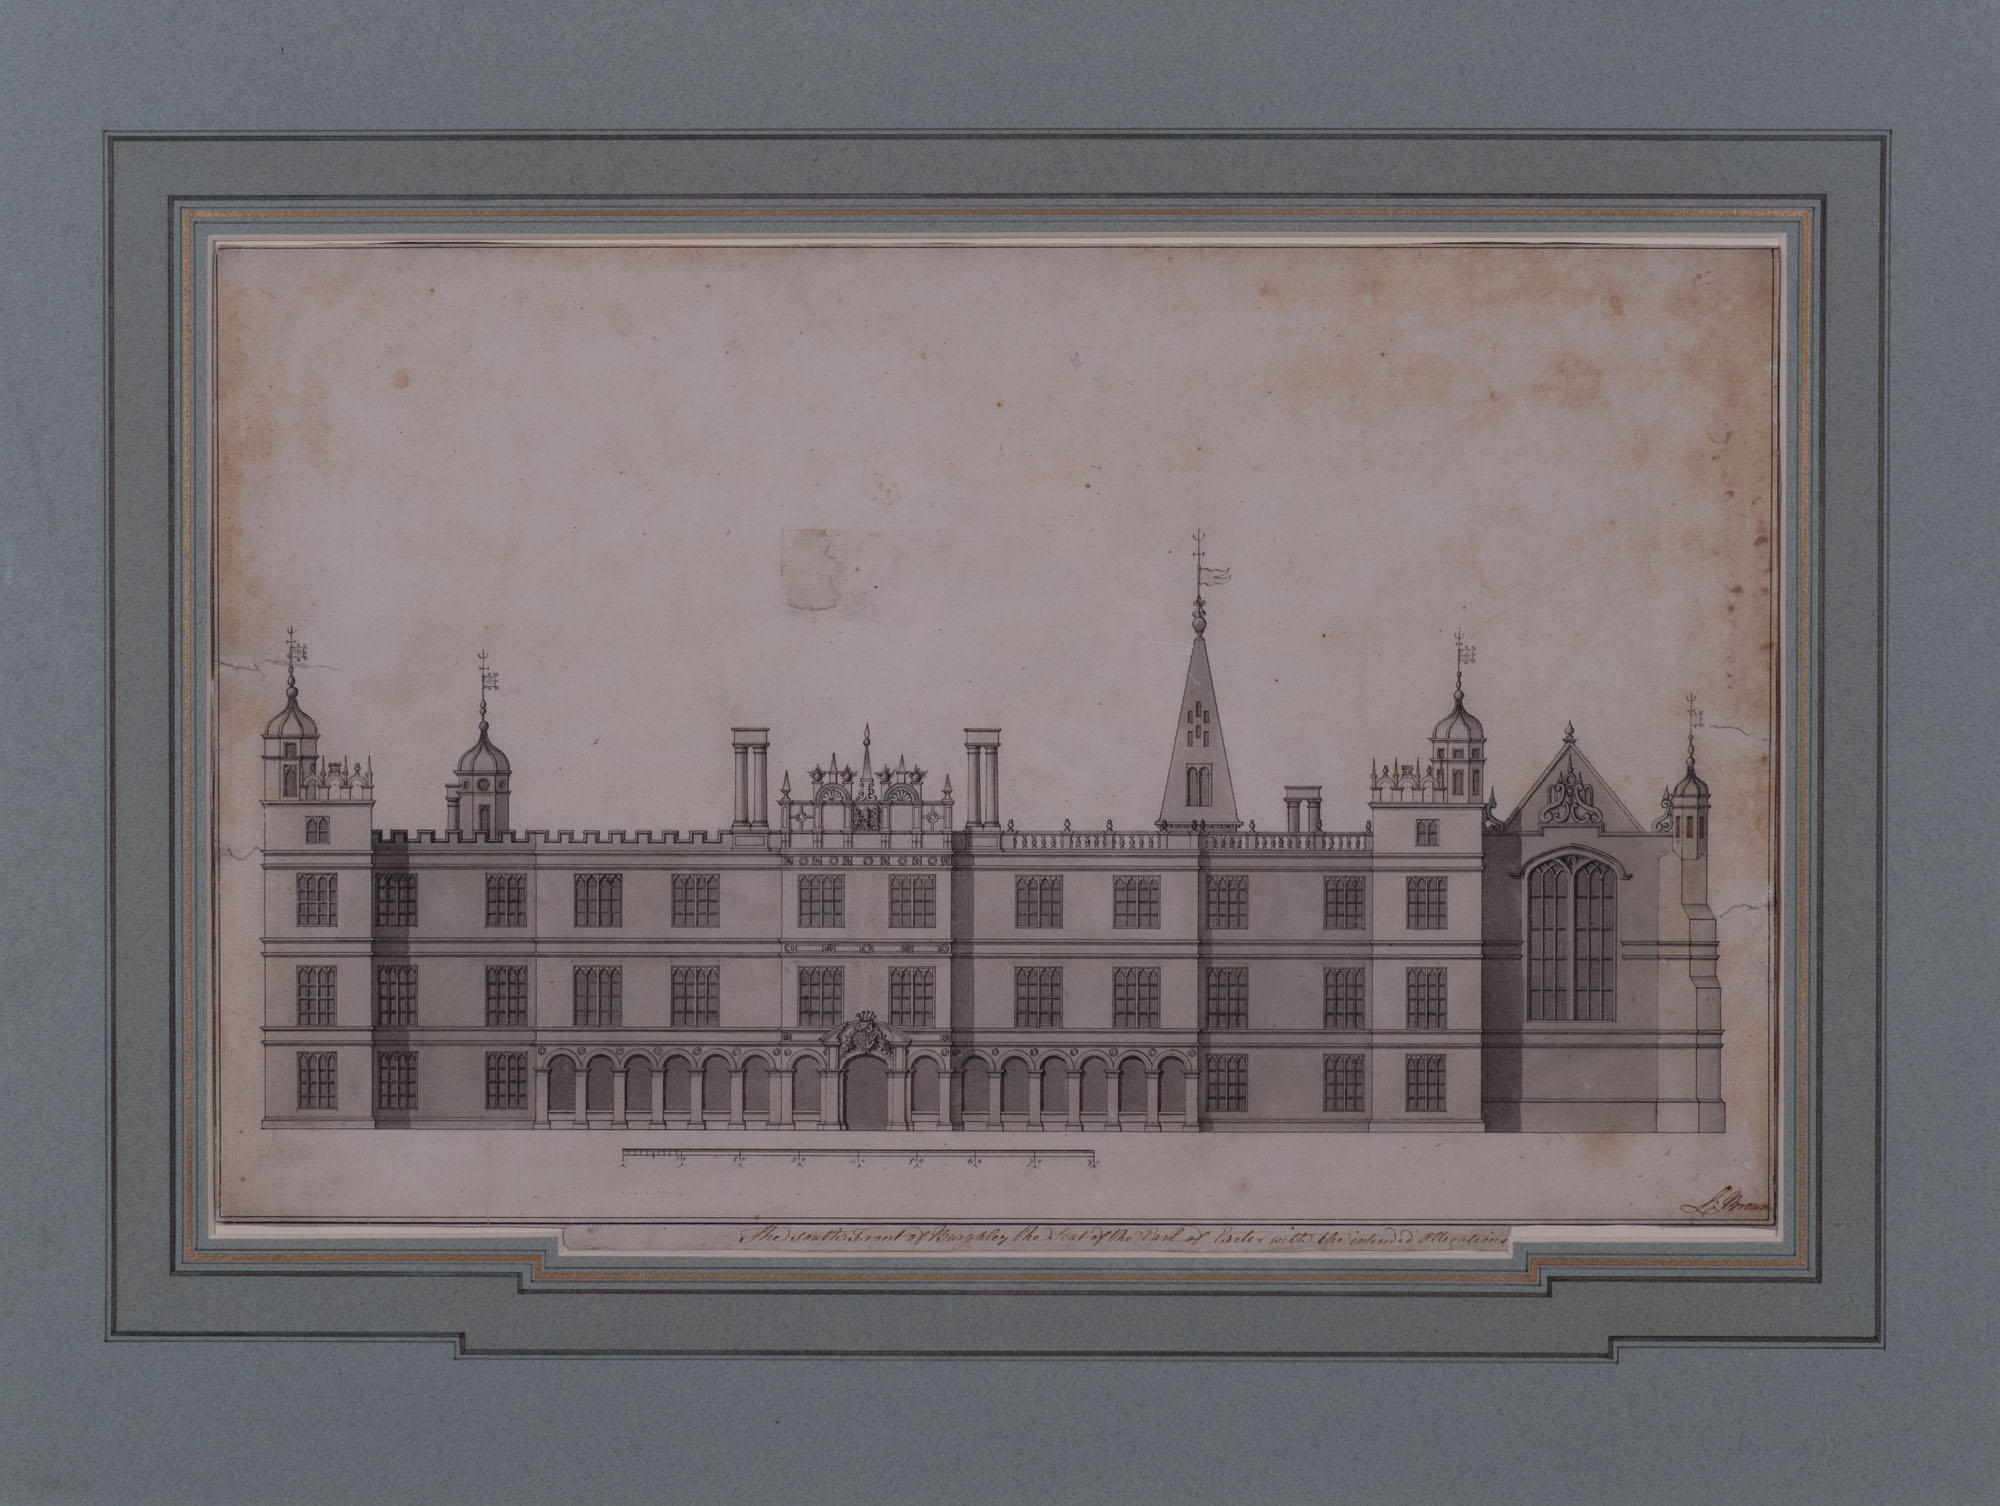 The South Front of Burghley with the Intended Alterations, by Lancelot 'Capability' Brown (1716-1783).